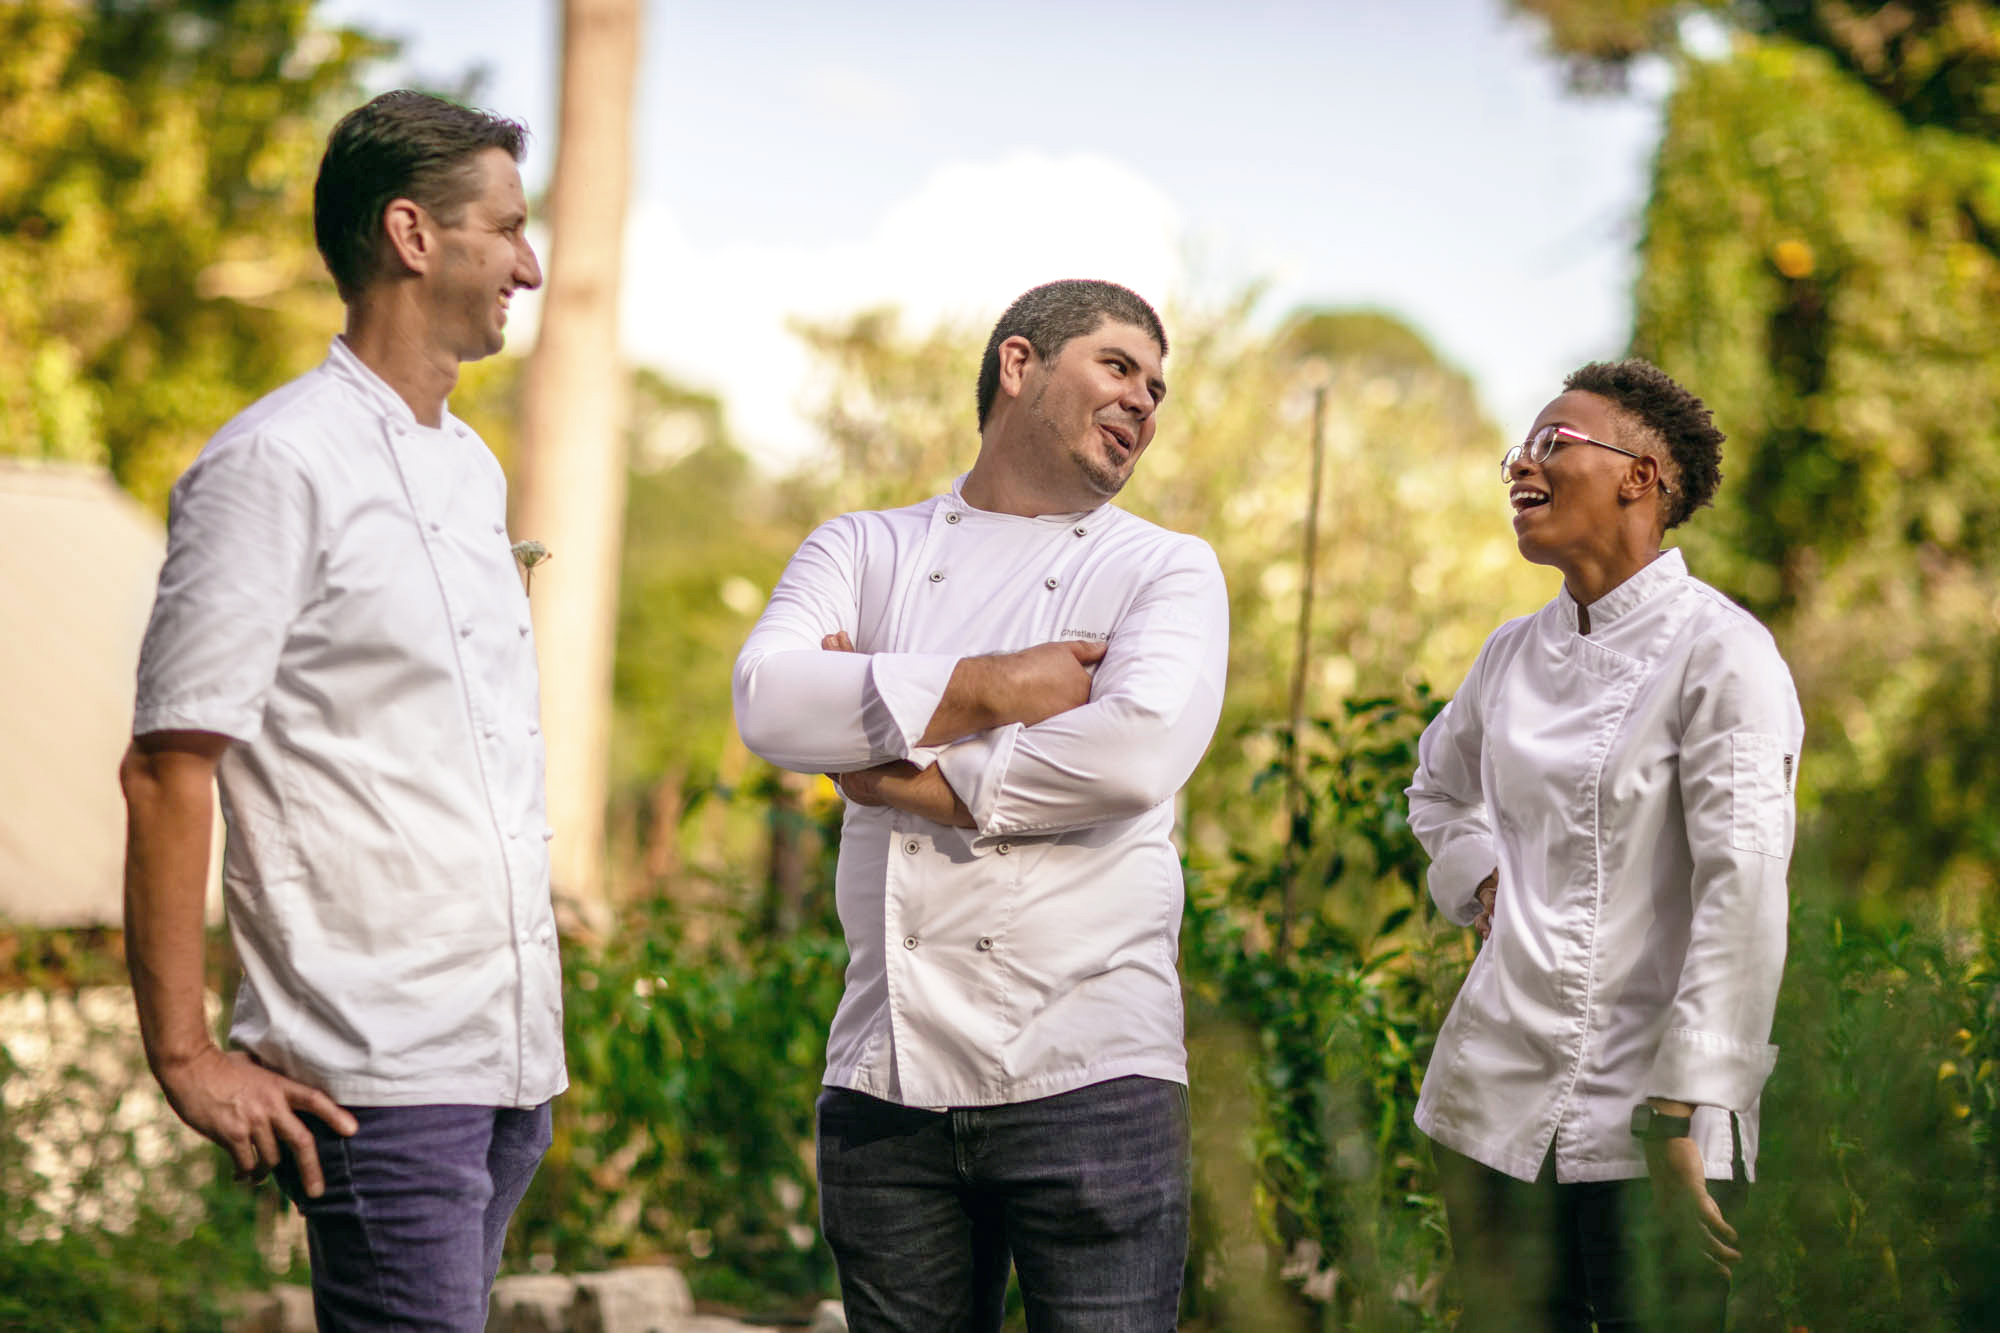 Left to right: Operating partner, executive chef Christopher Grossman, pastry chef Christian Castillo, and executive sous chef Jessica Mullice